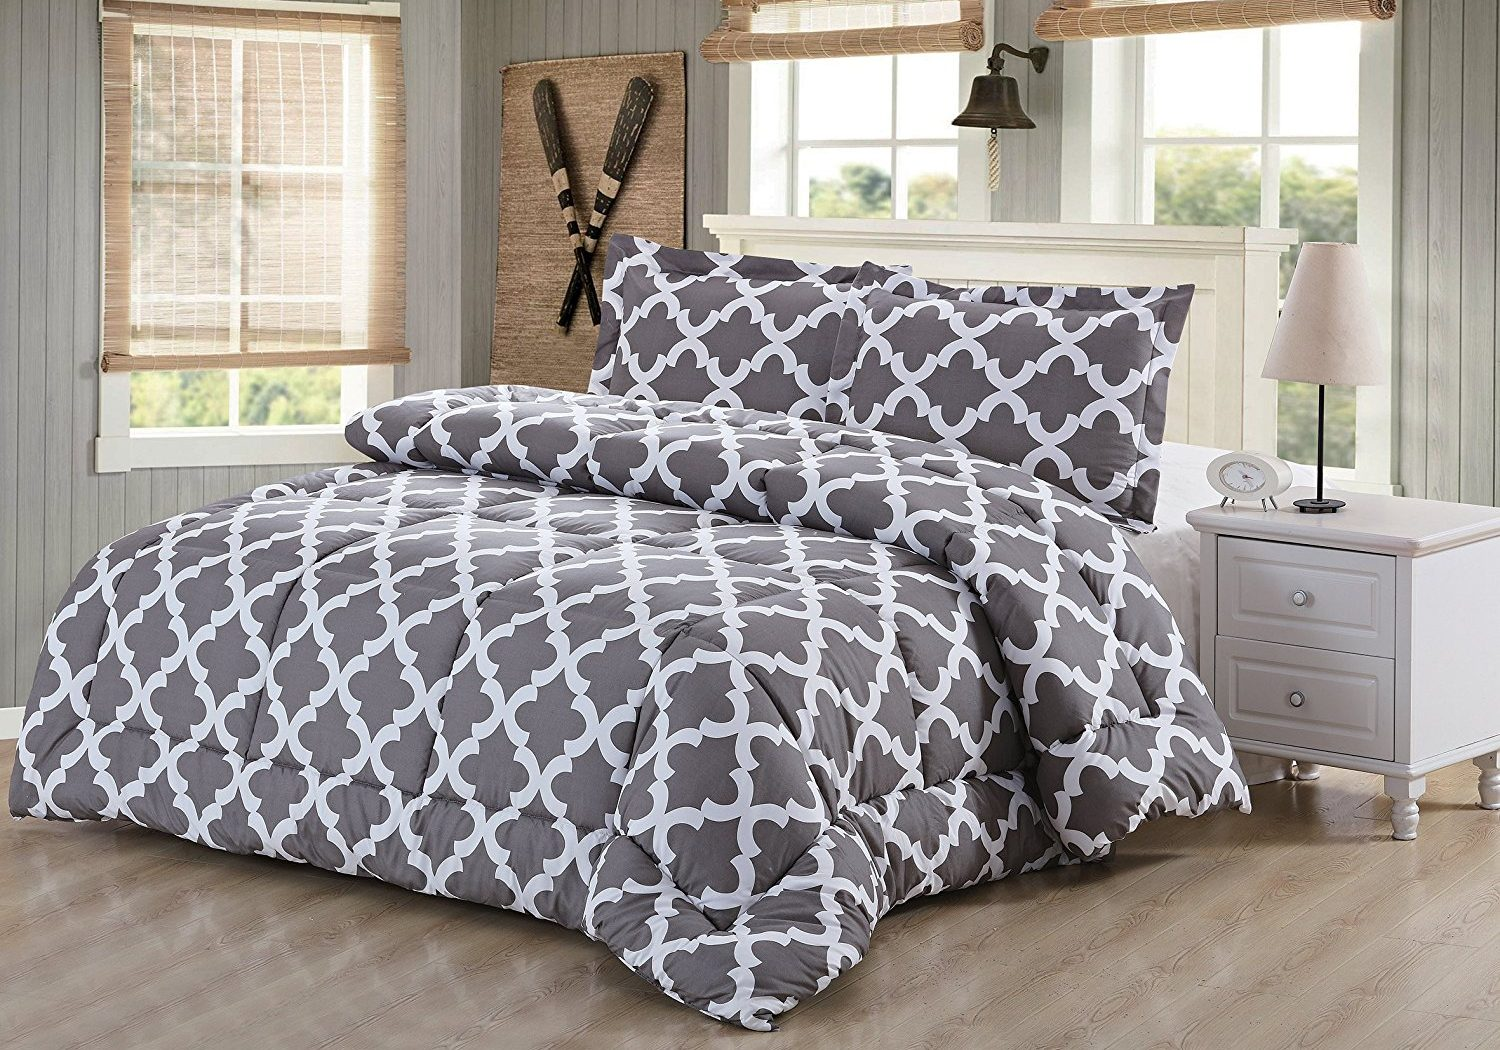 what is duvet what is duvet cover what is comforter in abstract color. Black Bedroom Furniture Sets. Home Design Ideas